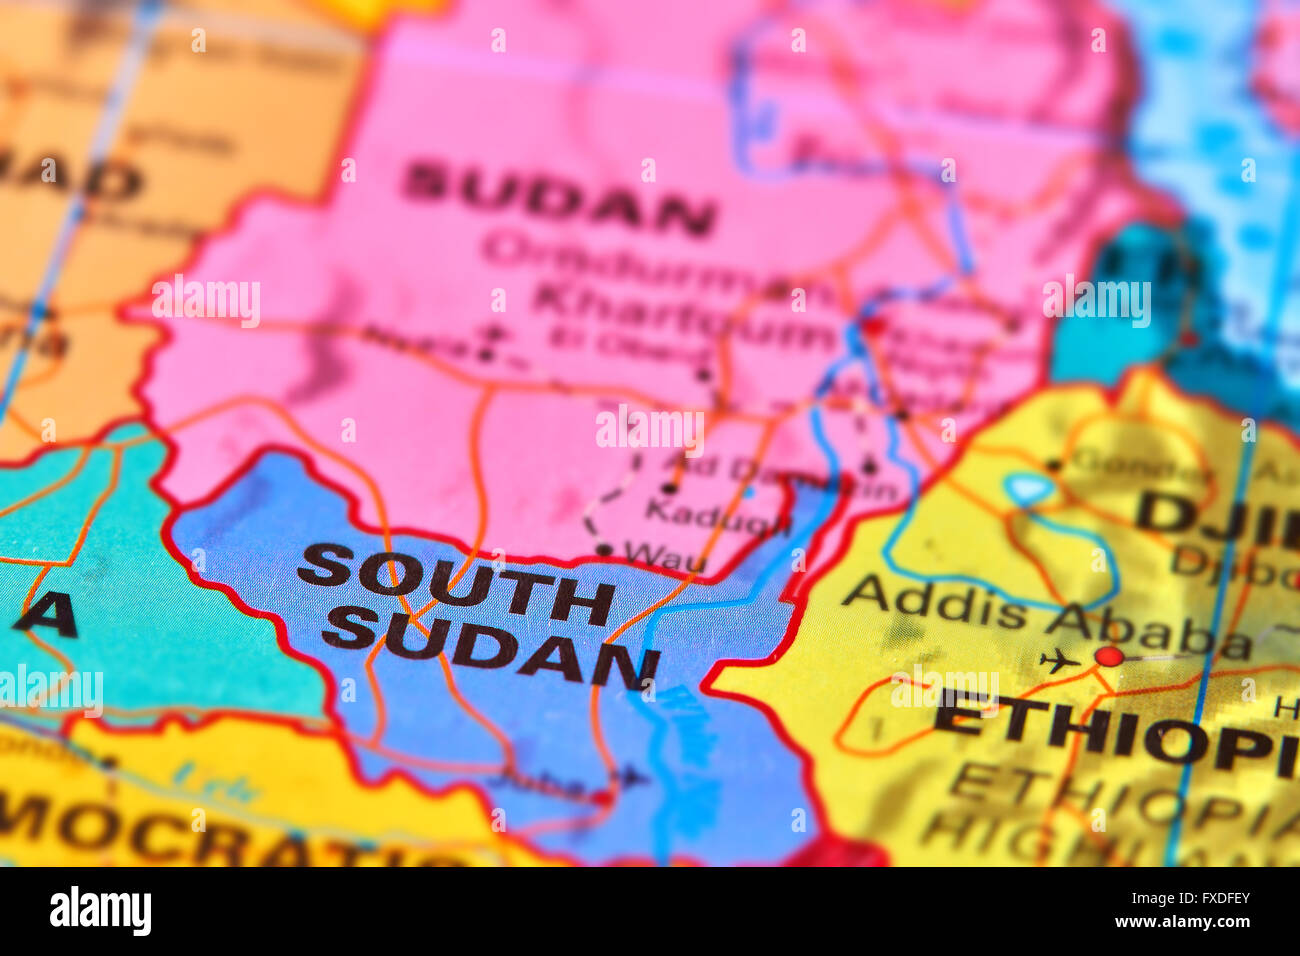 South Sudan Country in Africa on the World Map - Stock Image